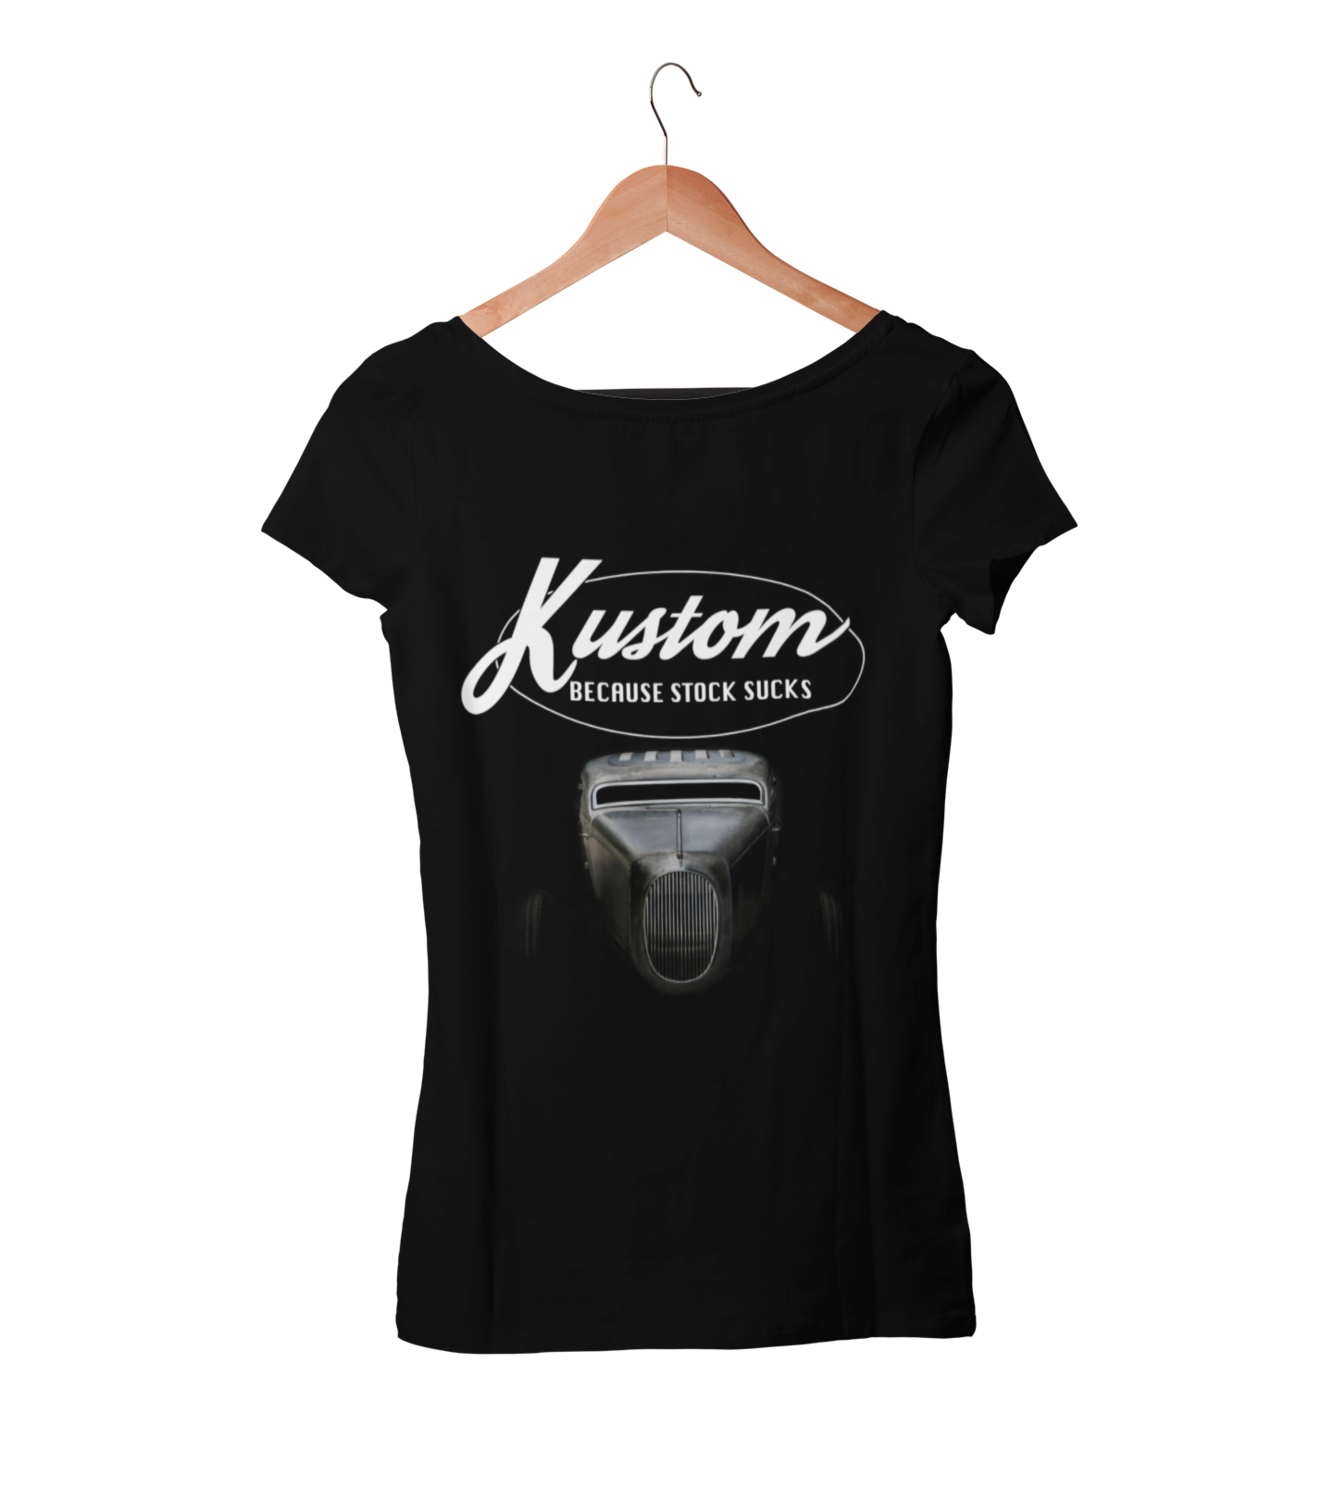 KUSTOM BECAUSE STOCK SUCKS T-SHIRT FOR WOMEN